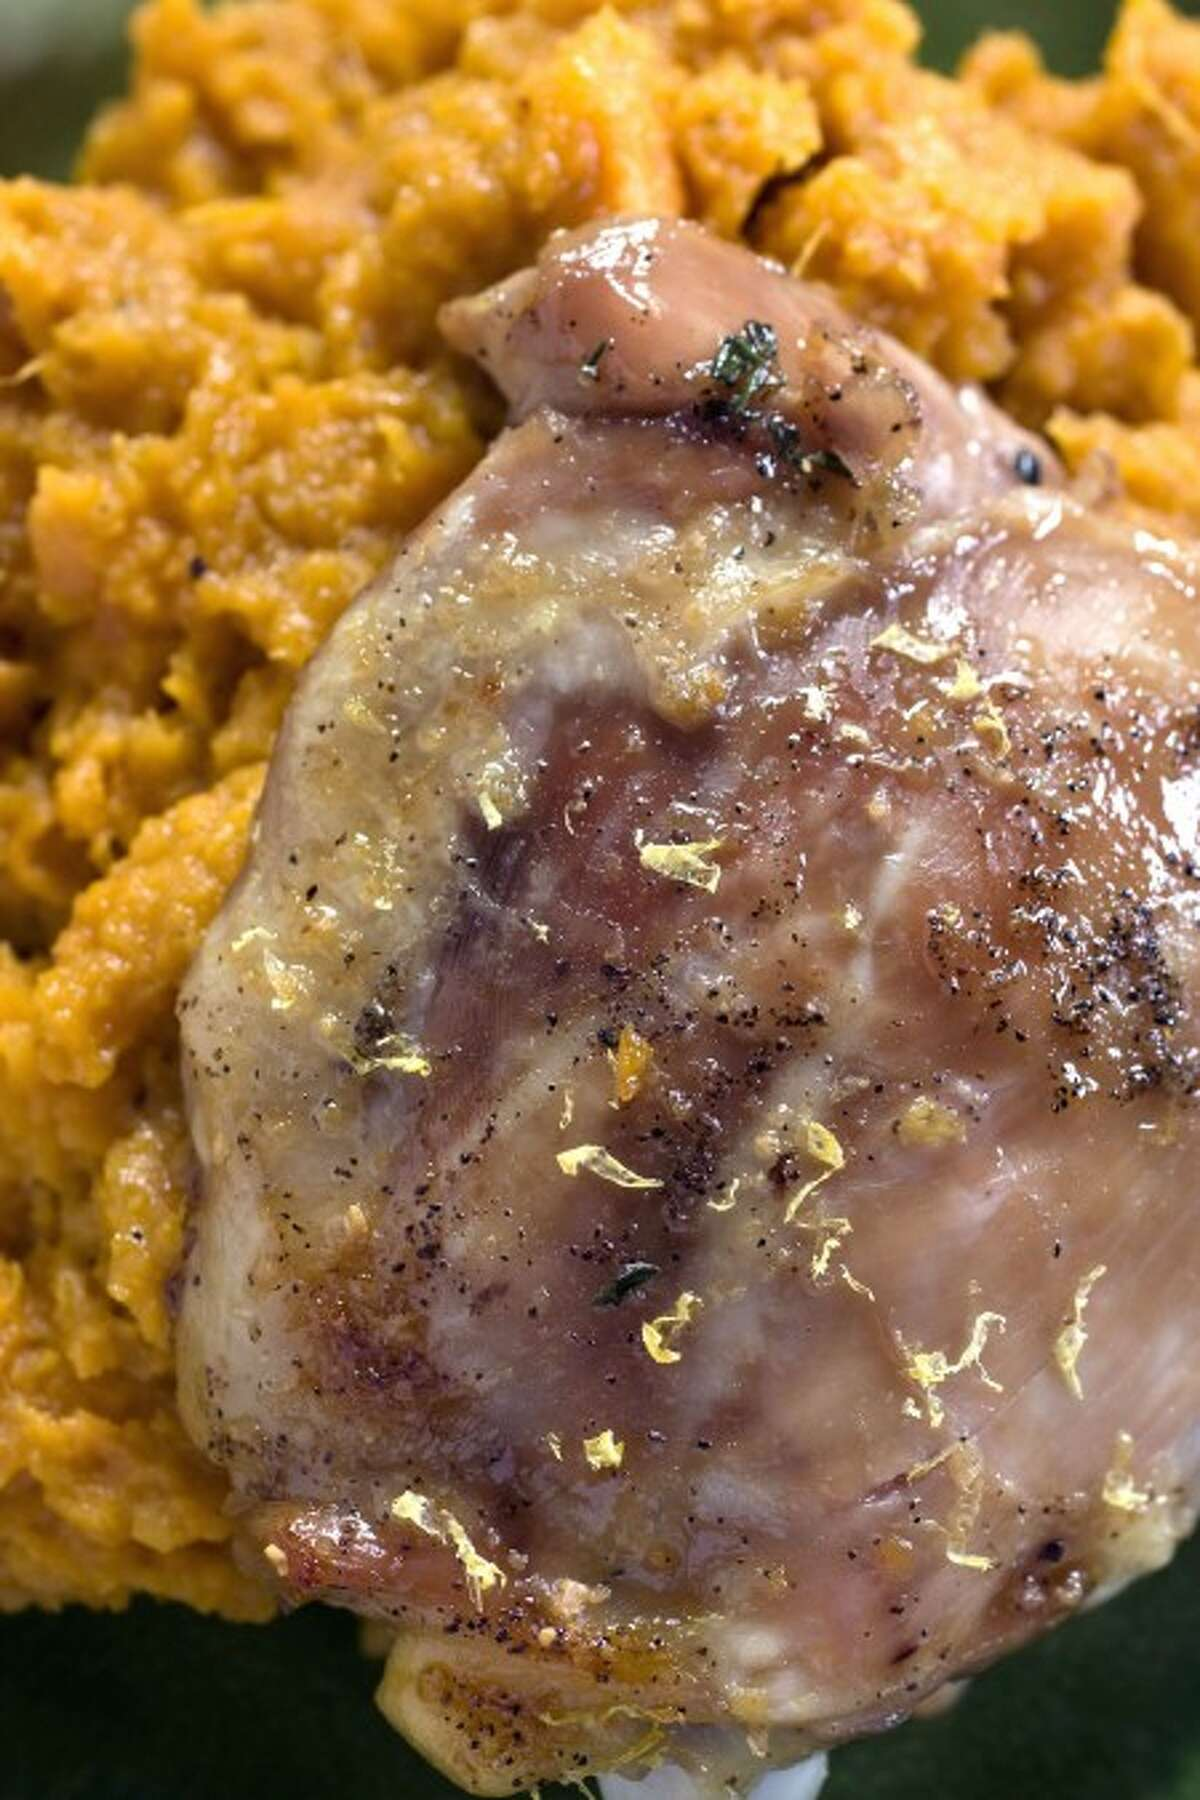 This Feb. 2, 2011 photo shows double maple roasted chicken thighs with sweet potatoes in Concord, N.H. If you have trouble finding granulated maple sugar, you can substitute an equal amount of dark brown sugar. (AP Photo/Larry Crowe)